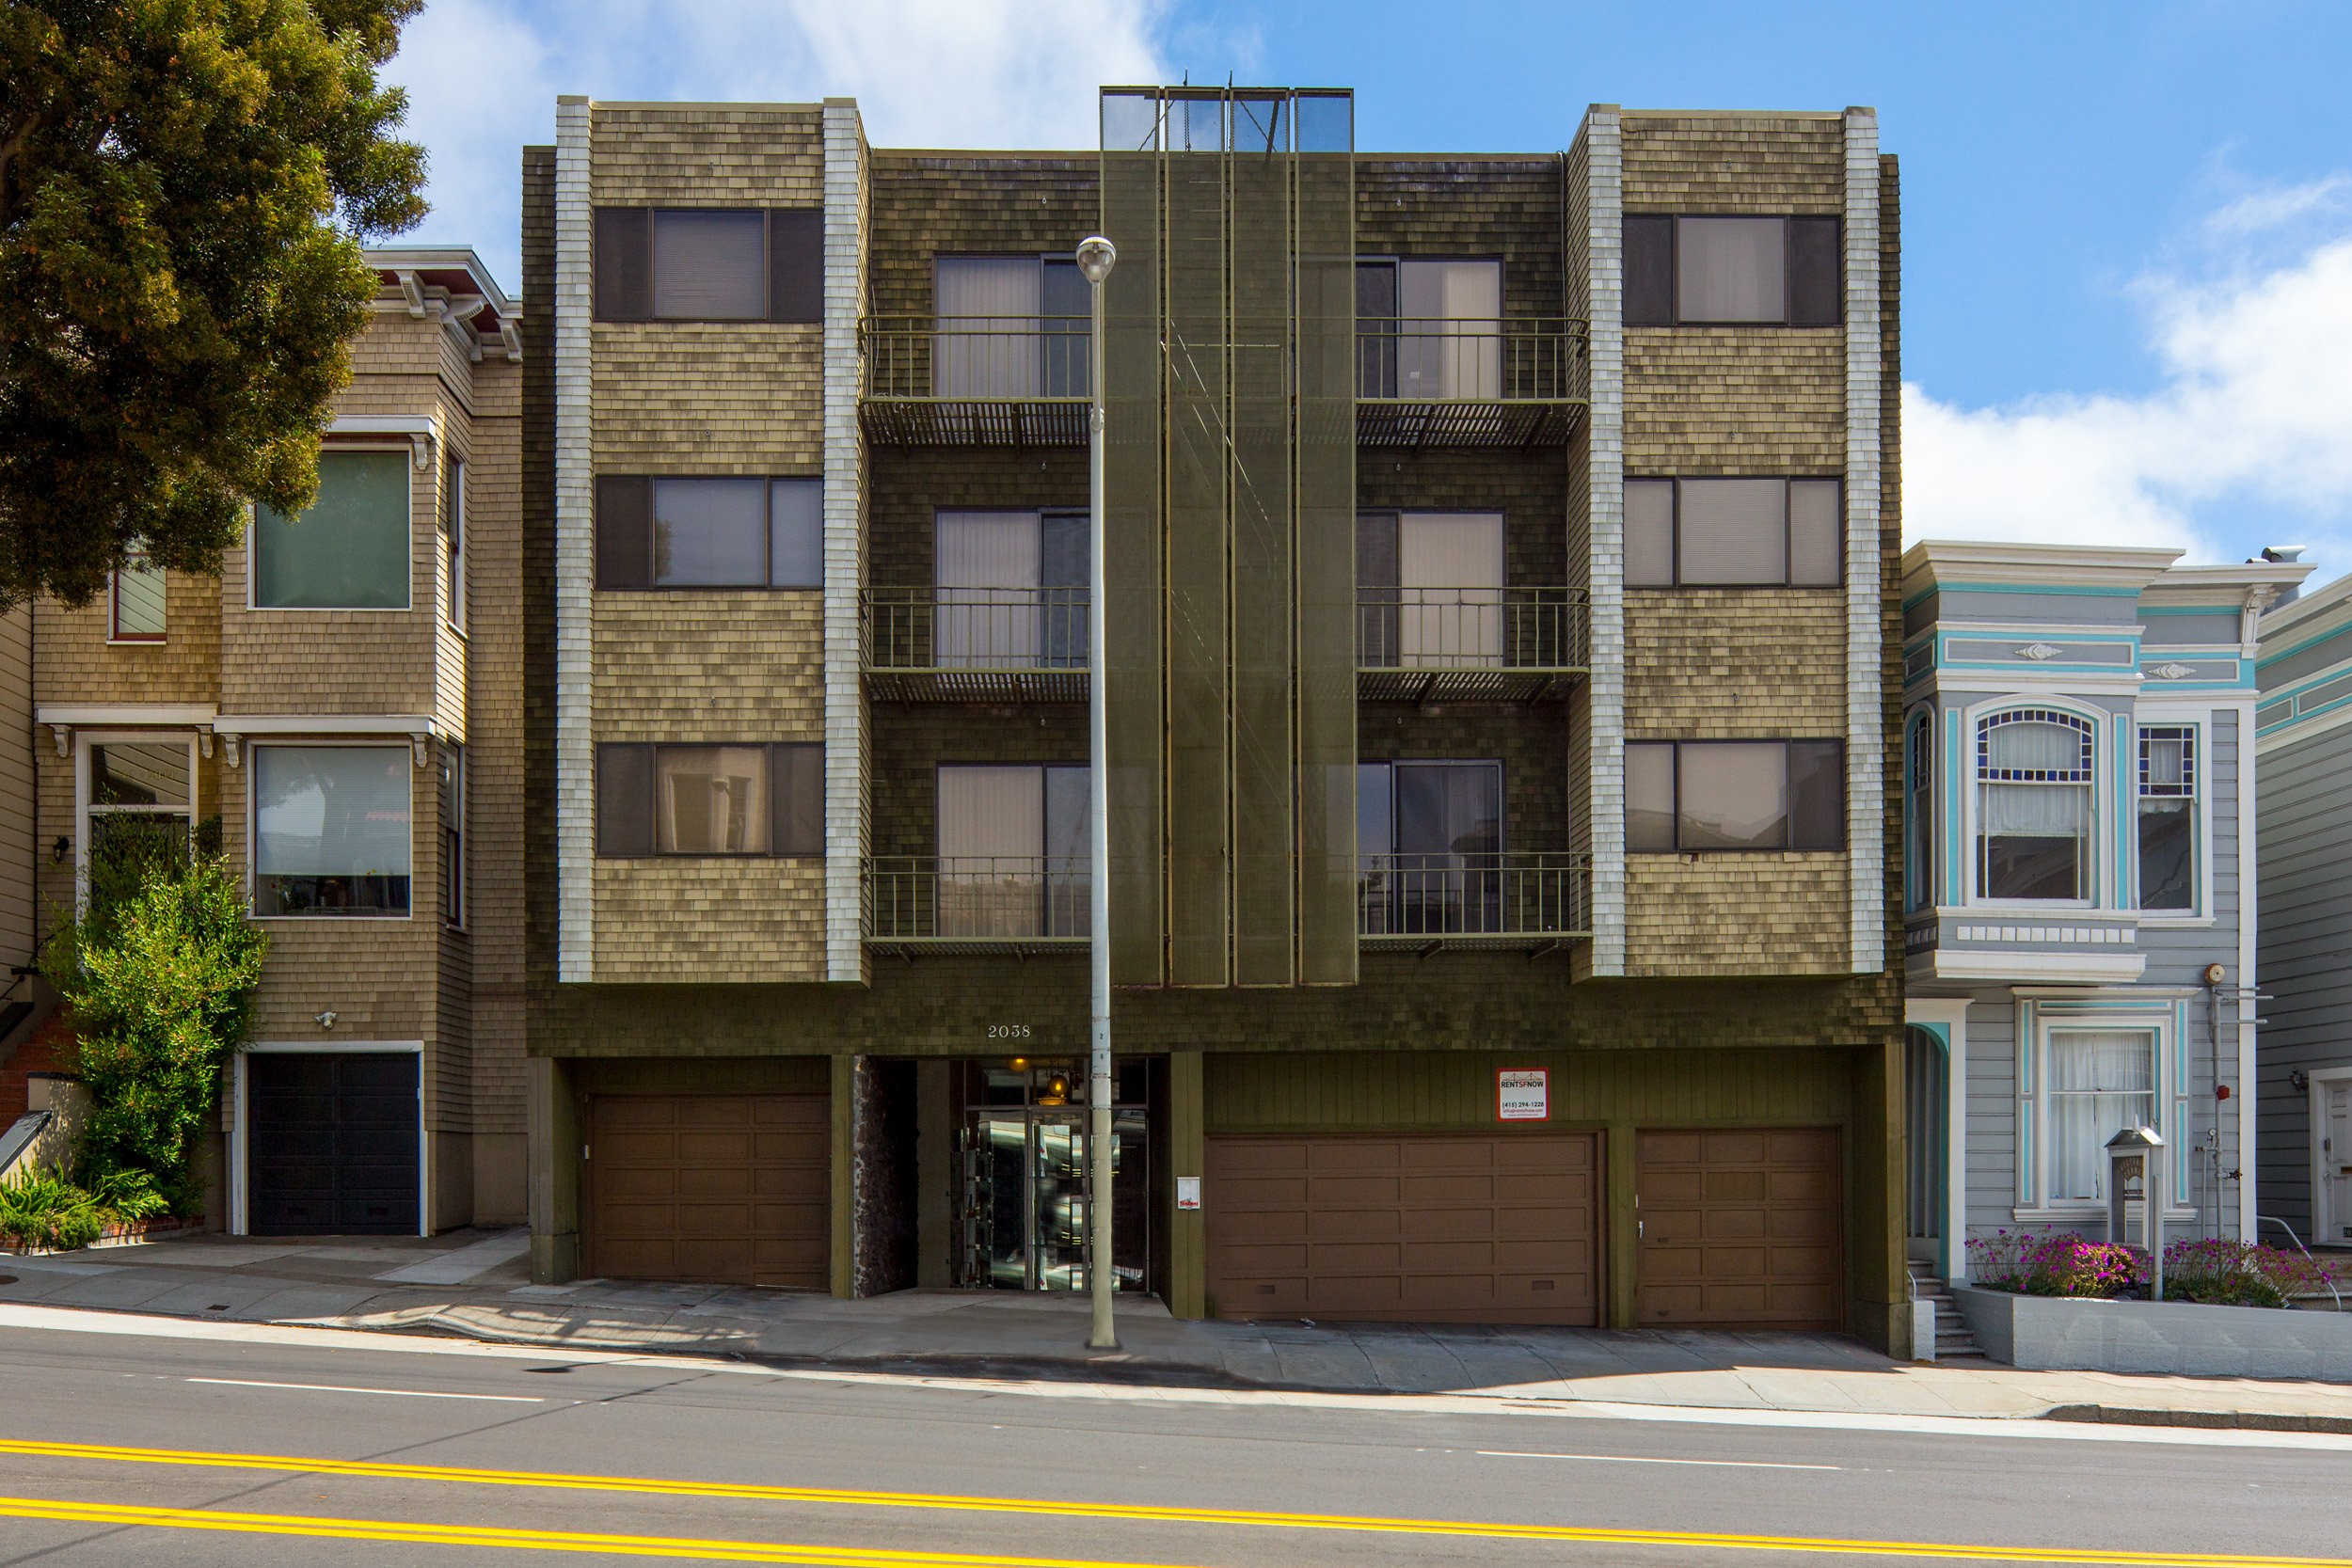 2038 DIVISADERO Apartments